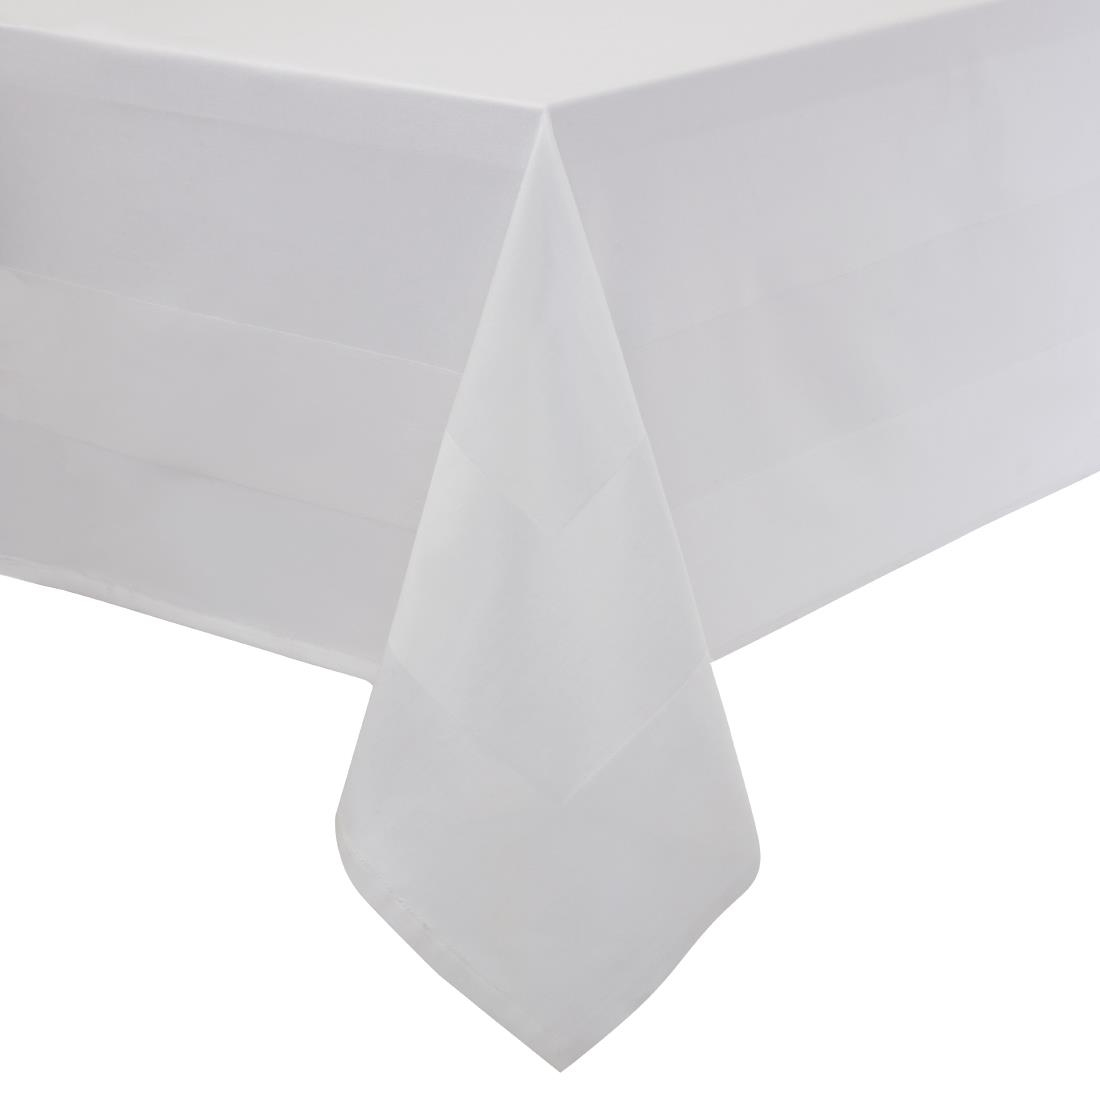 Image of Mitre Luxury Satin Band Tablecloth 2290 x 2290mm